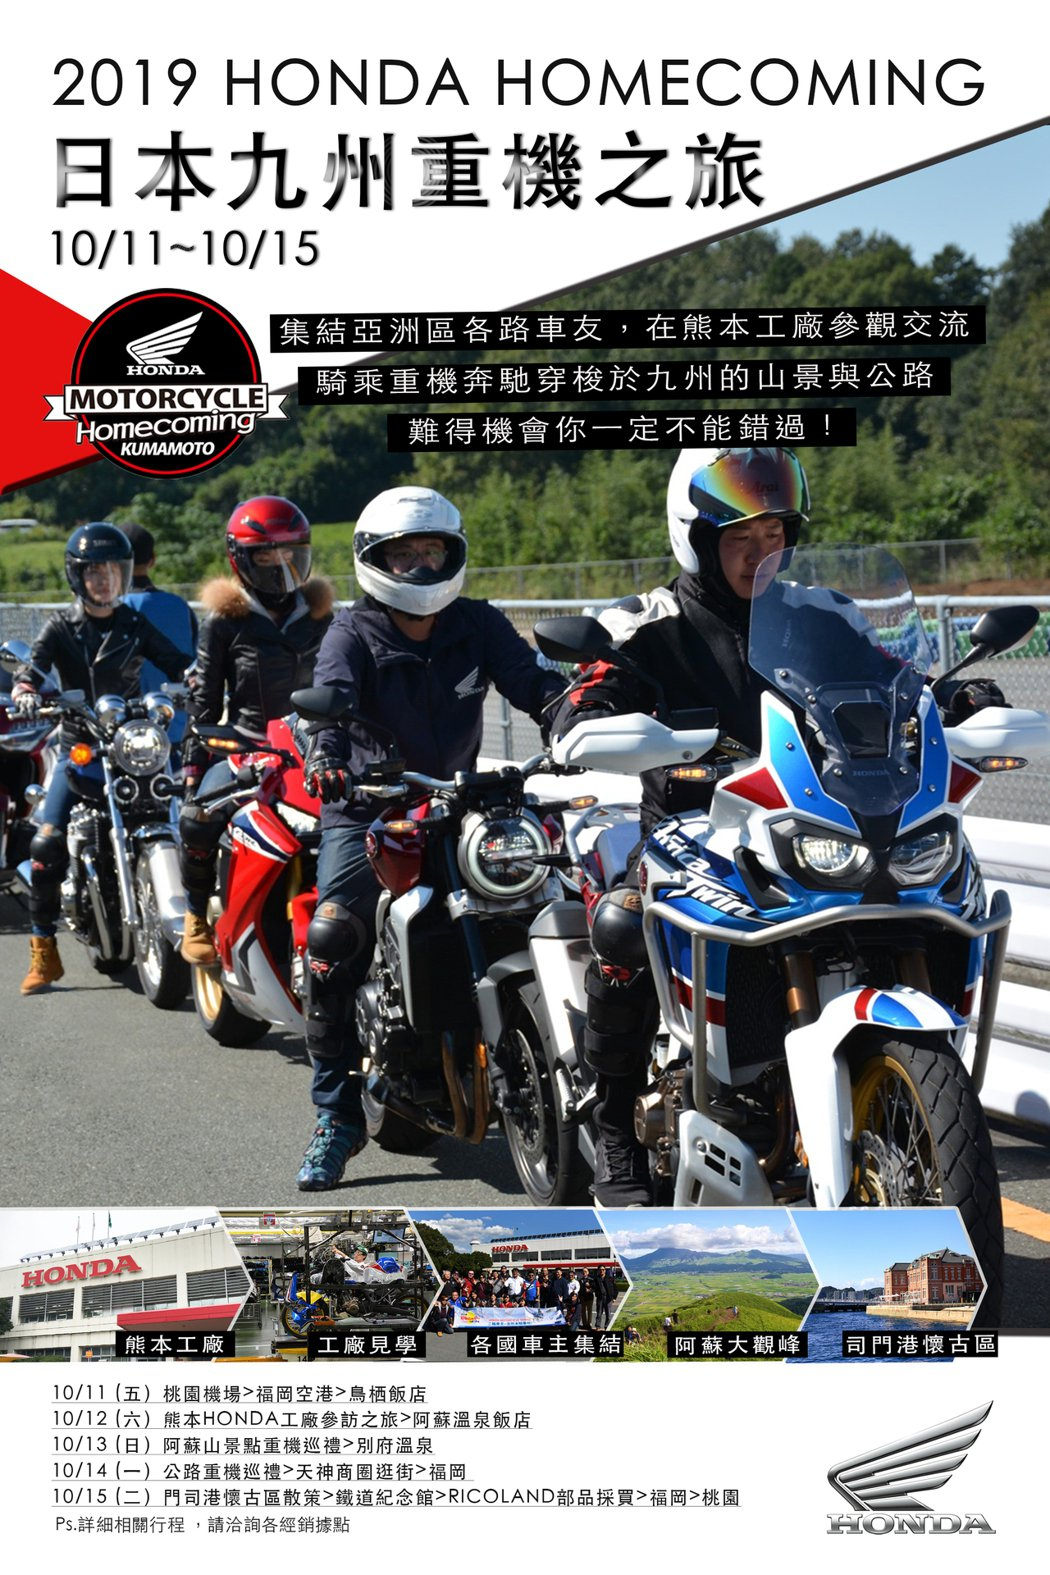 Honda Motorcycle Homecoming九州之旅。 圖/Honda...